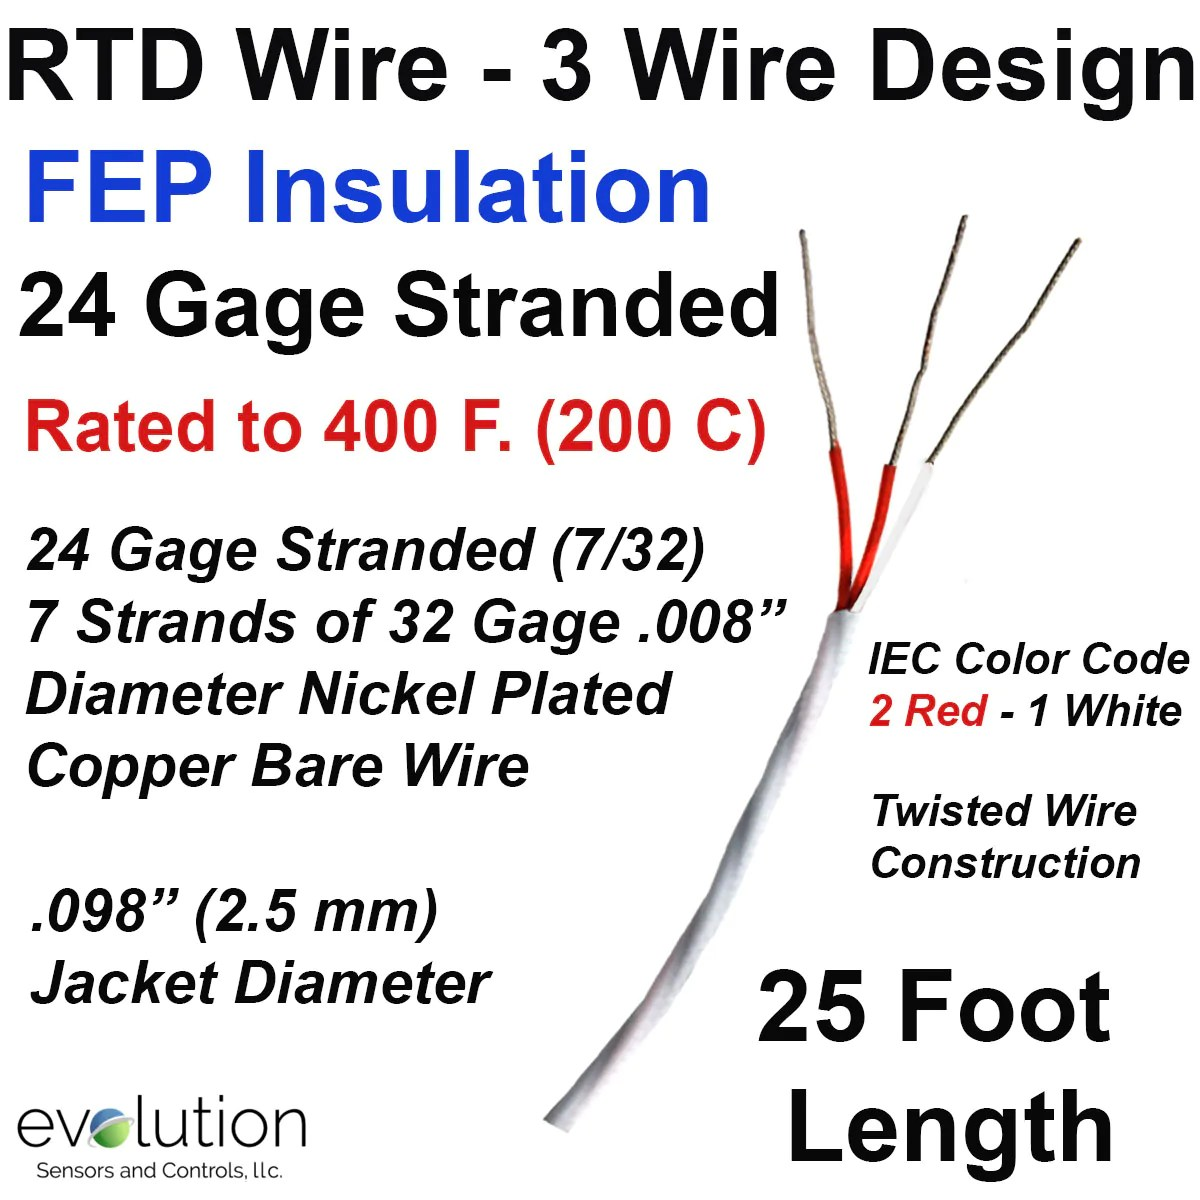 rtd wire 3 wire design 24 gage stranded with fep insulation 25 rtd wiring color code [ 1200 x 1200 Pixel ]